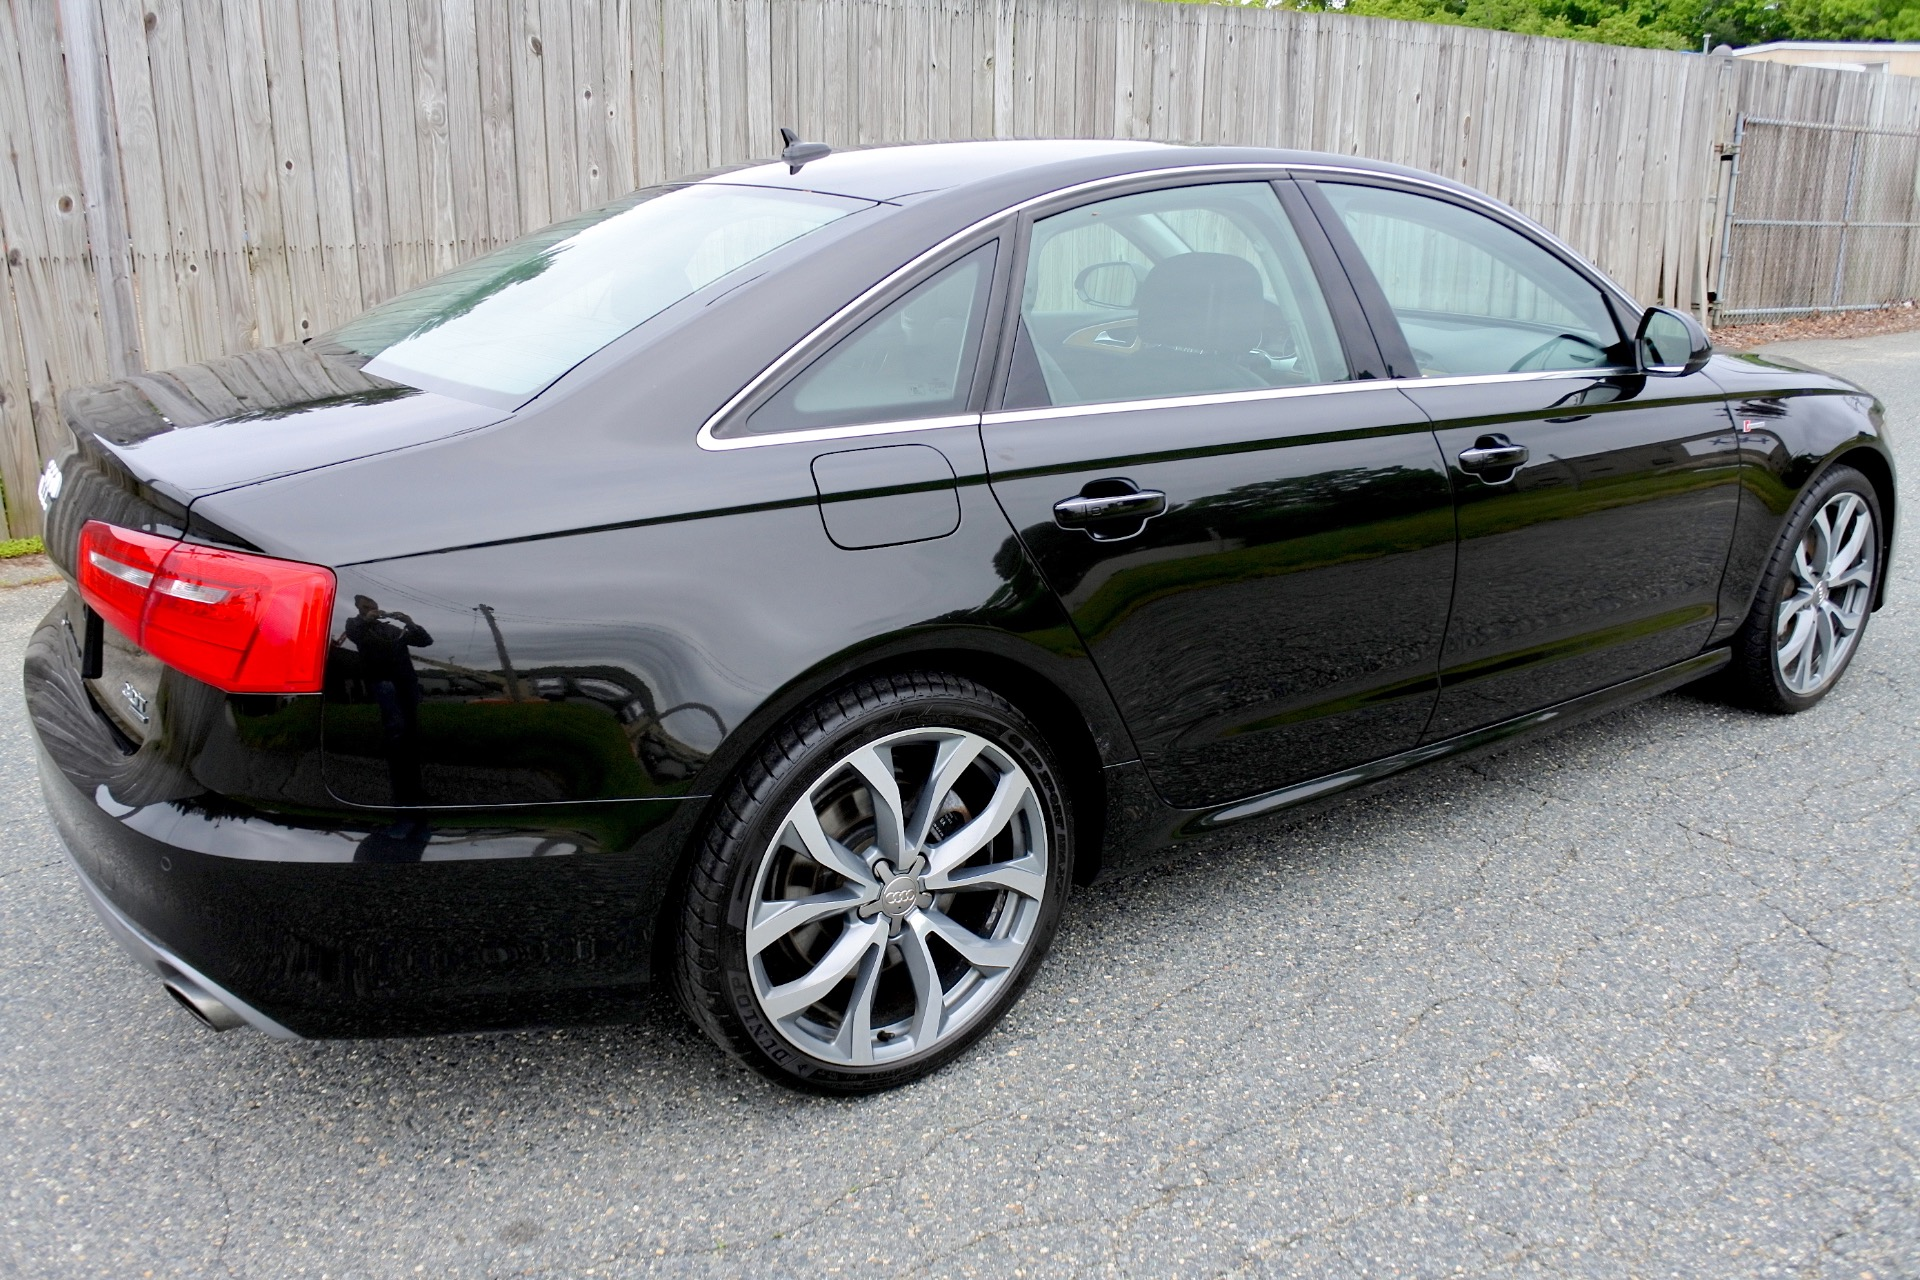 Used 2013 Audi A6 4dr Sdn quattro 3.0T Prestige Used 2013 Audi A6 4dr Sdn quattro 3.0T Prestige for sale  at Metro West Motorcars LLC in Shrewsbury MA 5